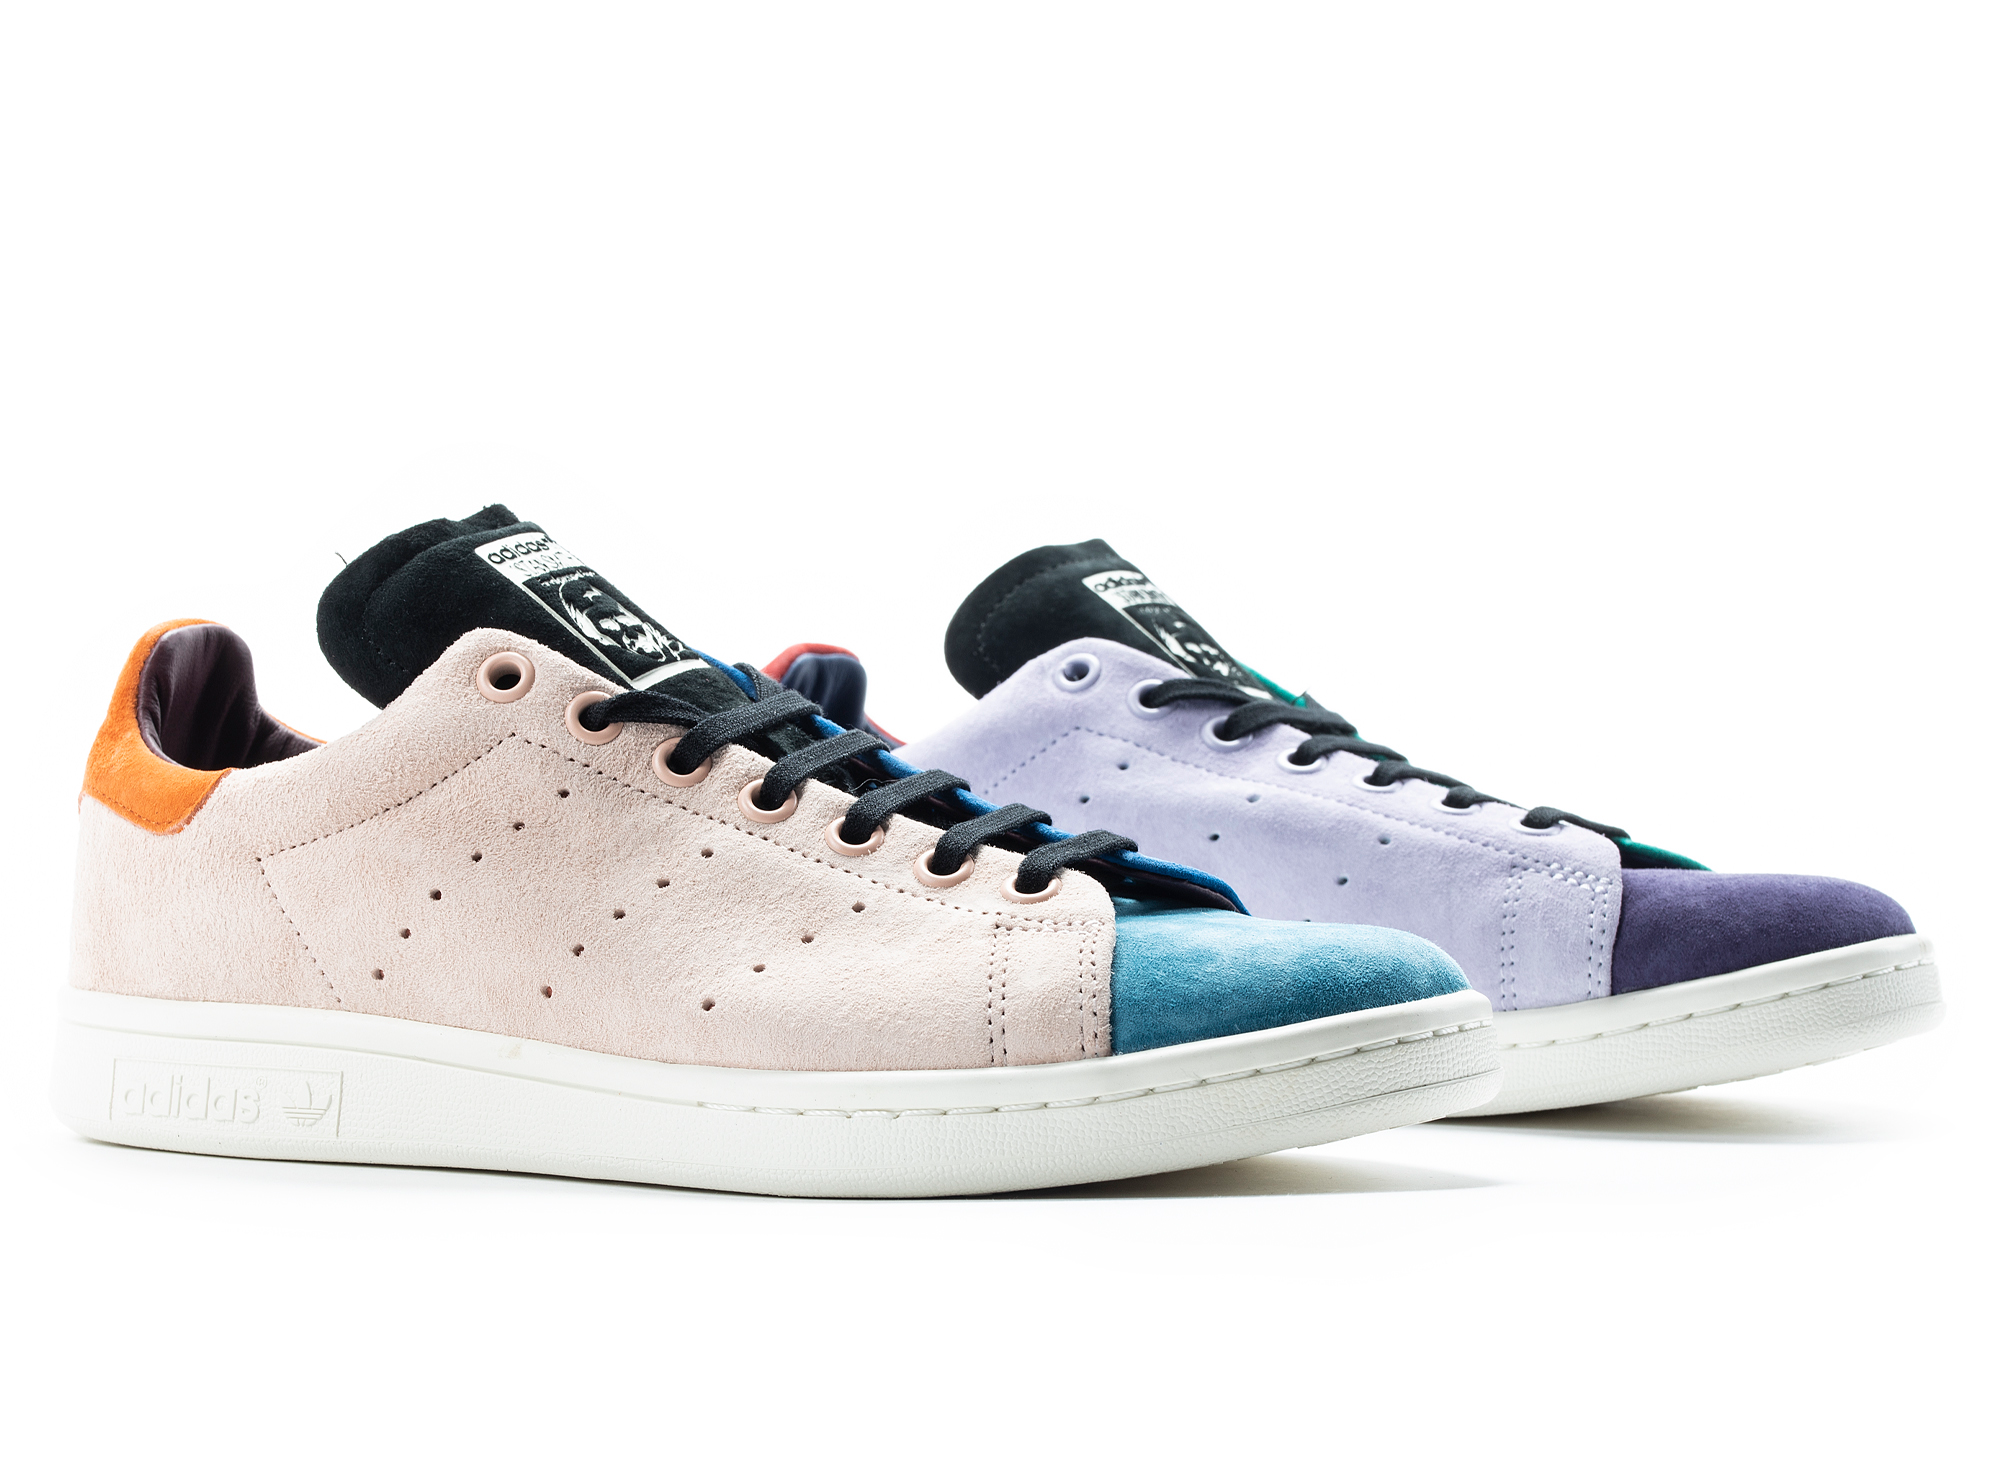 adidas stan smith recon